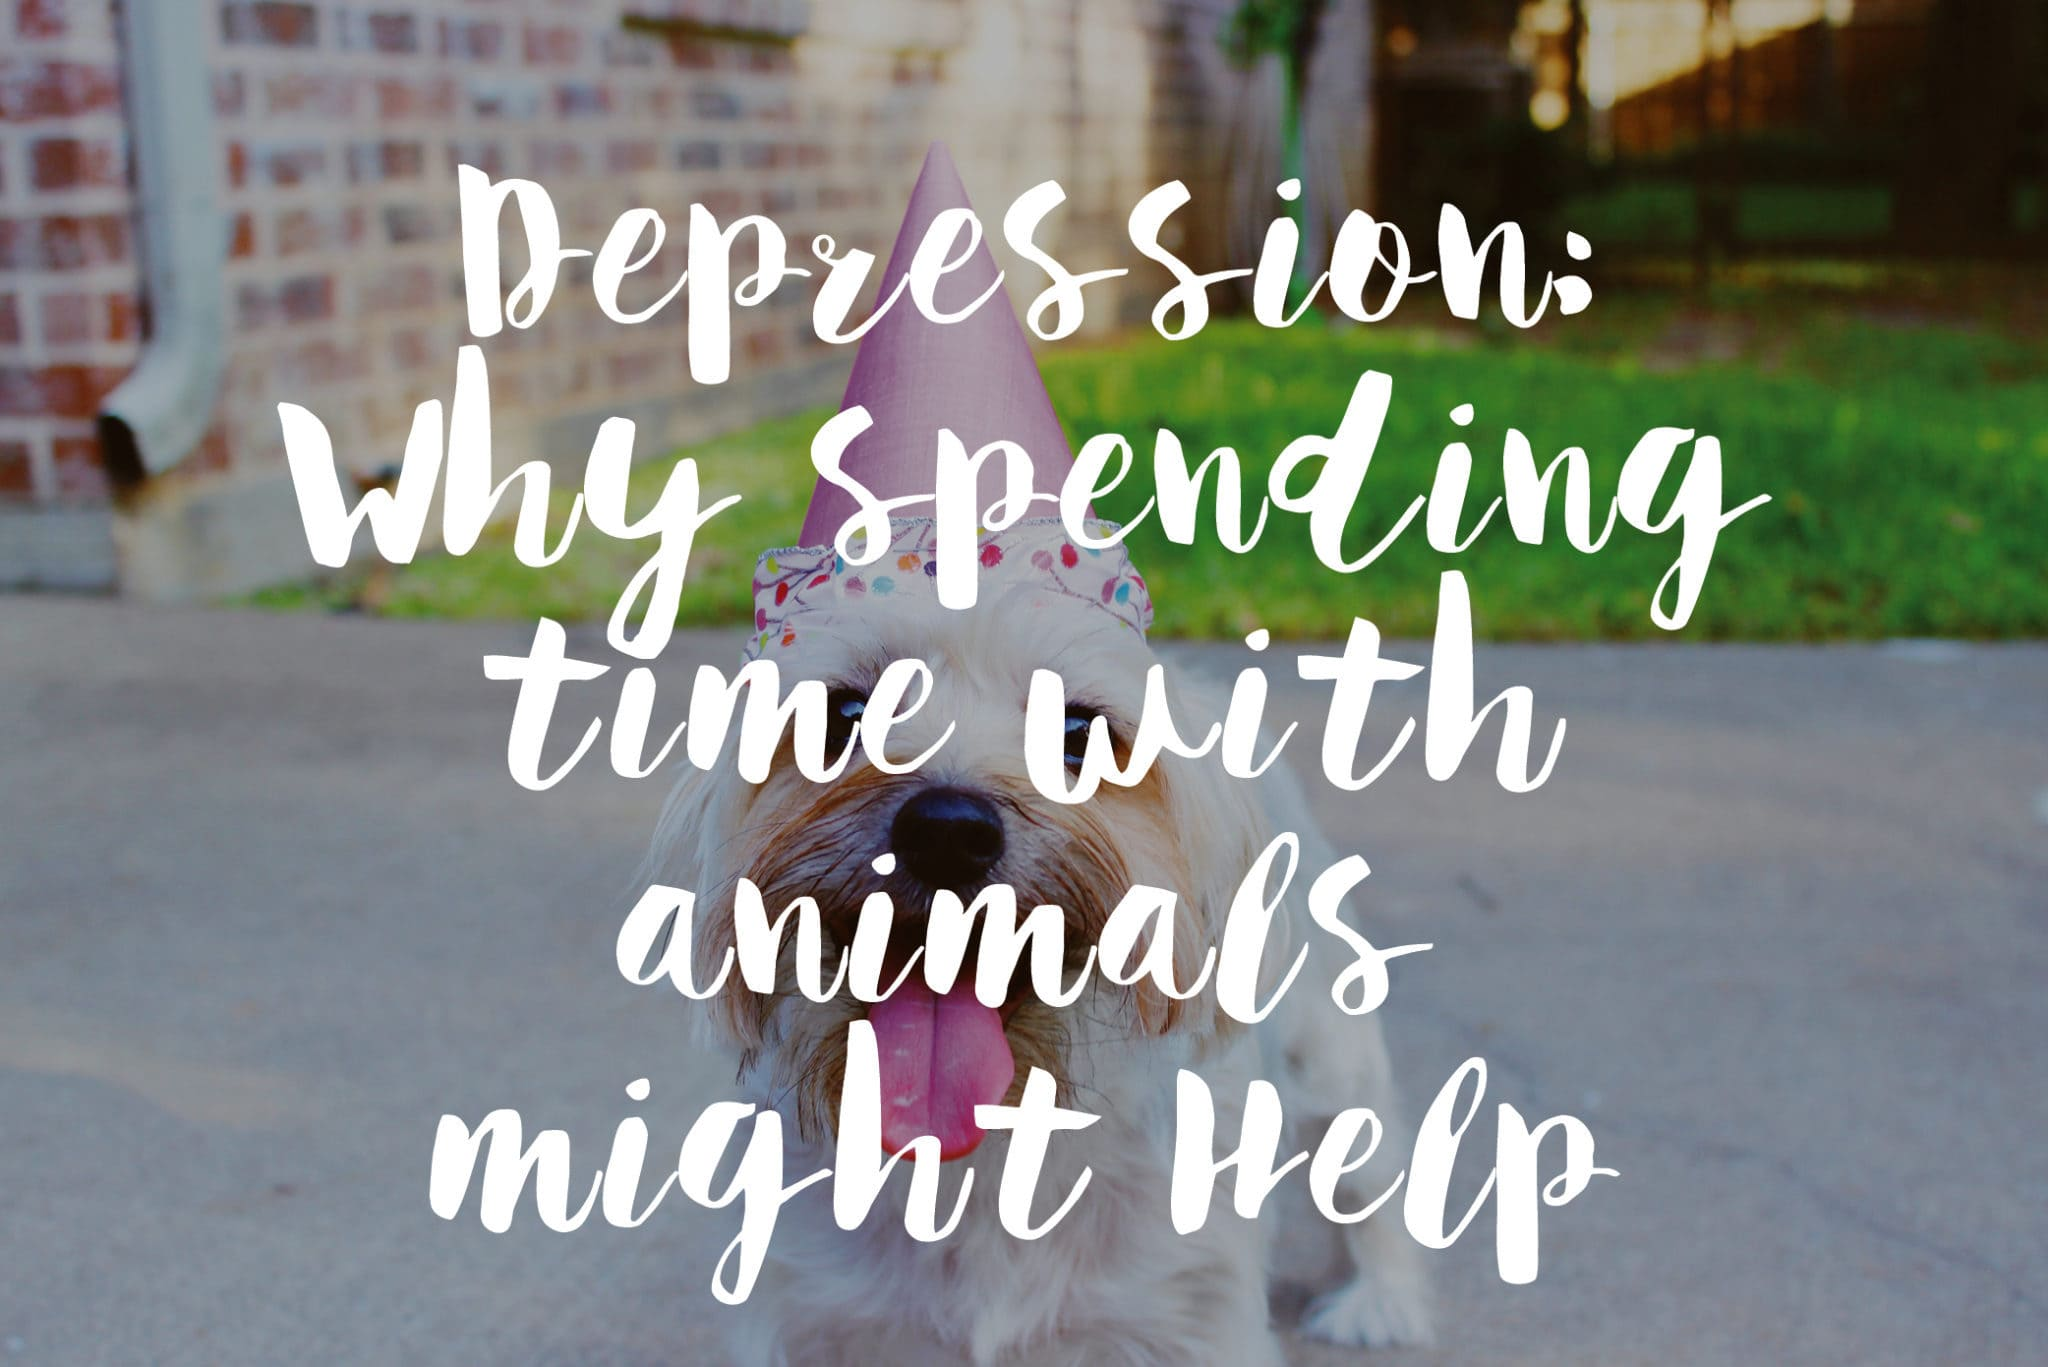 Depression Why Spending Time With Animals Might Help